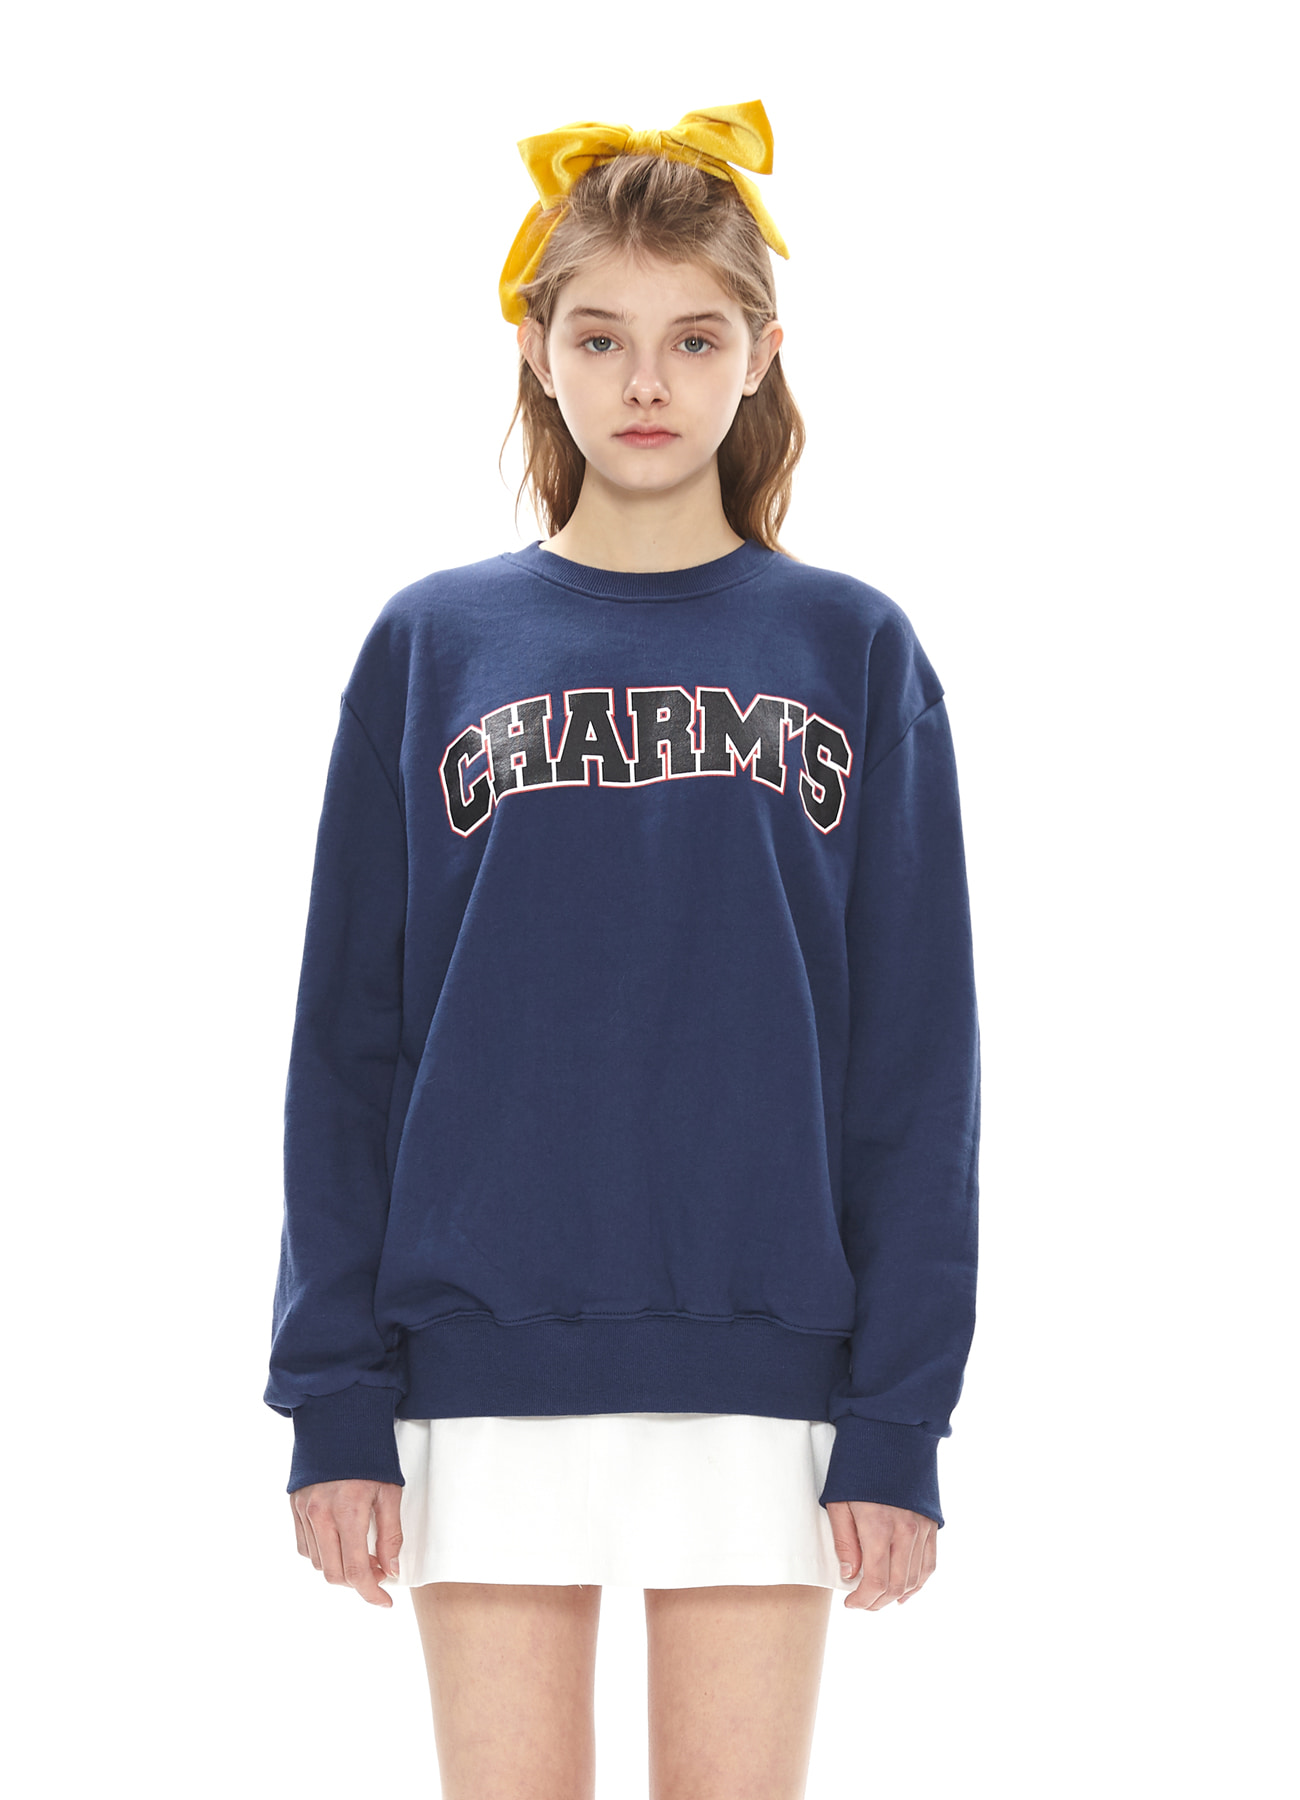 CHARMS BIG LOGO SWEATSHIRTS_NV